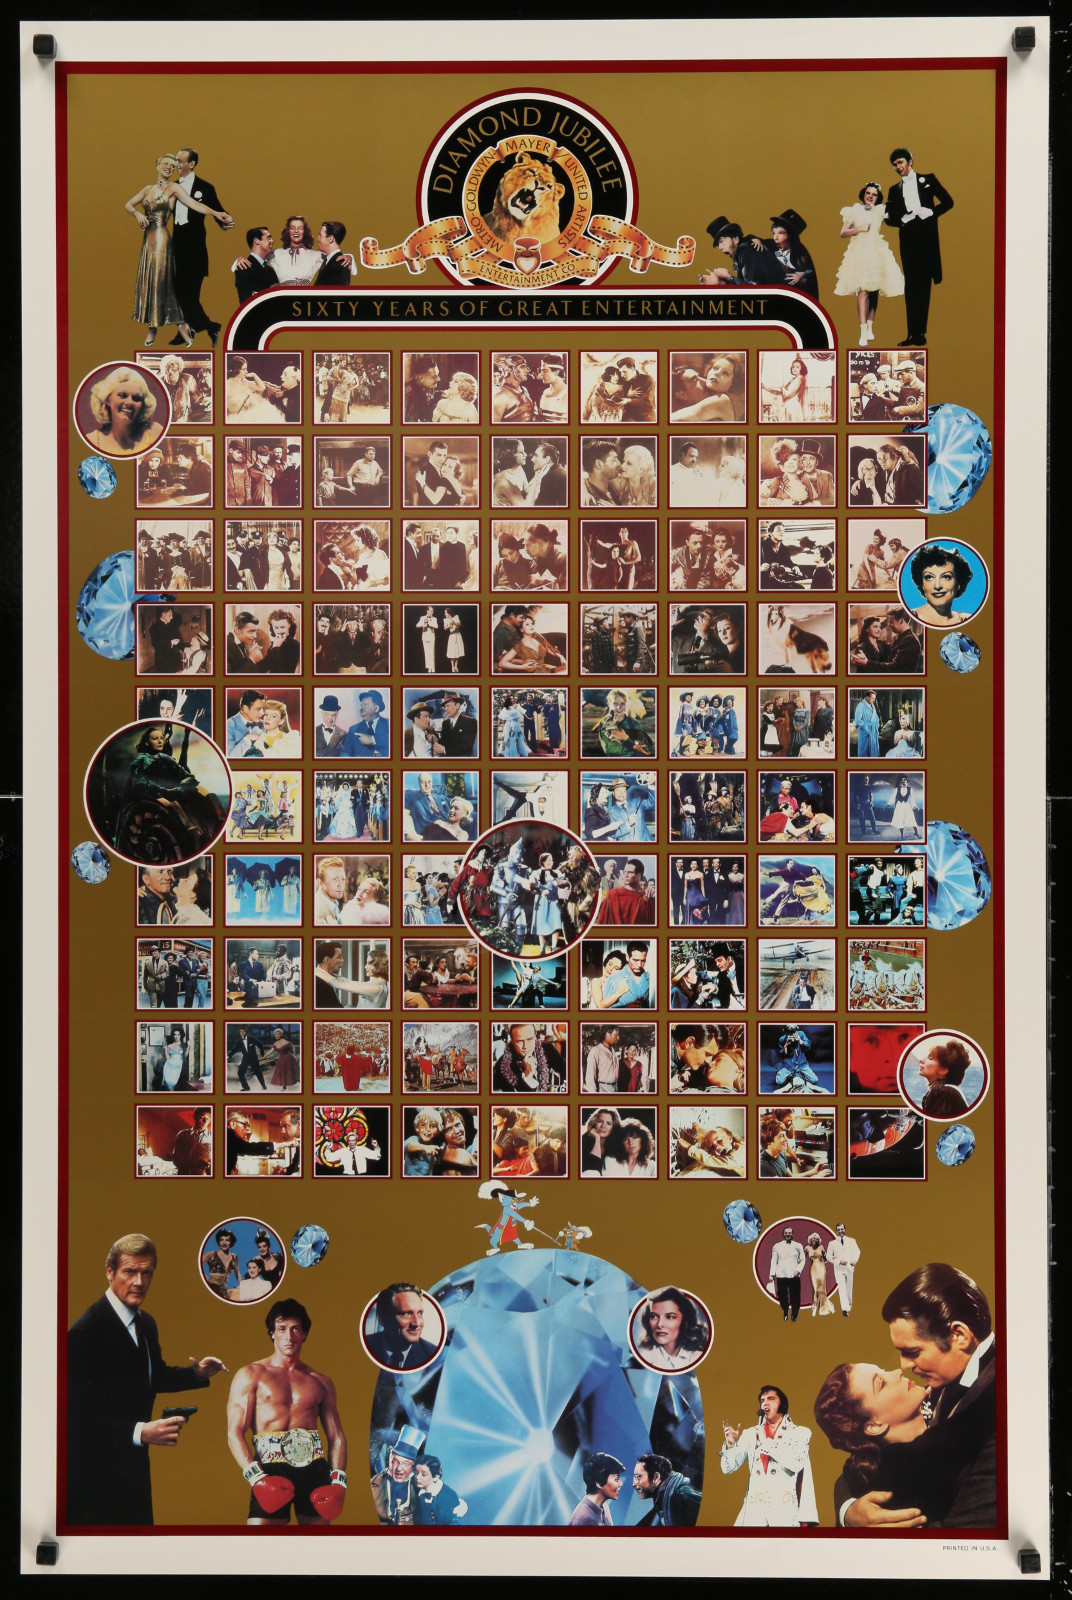 Sixty Years Of Great Entertainment Mgm Diamond Jubilee 2A414 A Part Of A Lot 20 Unfolded Double-Sided And Single-Sided One-Sheets '80S-90S Great Movie Images!